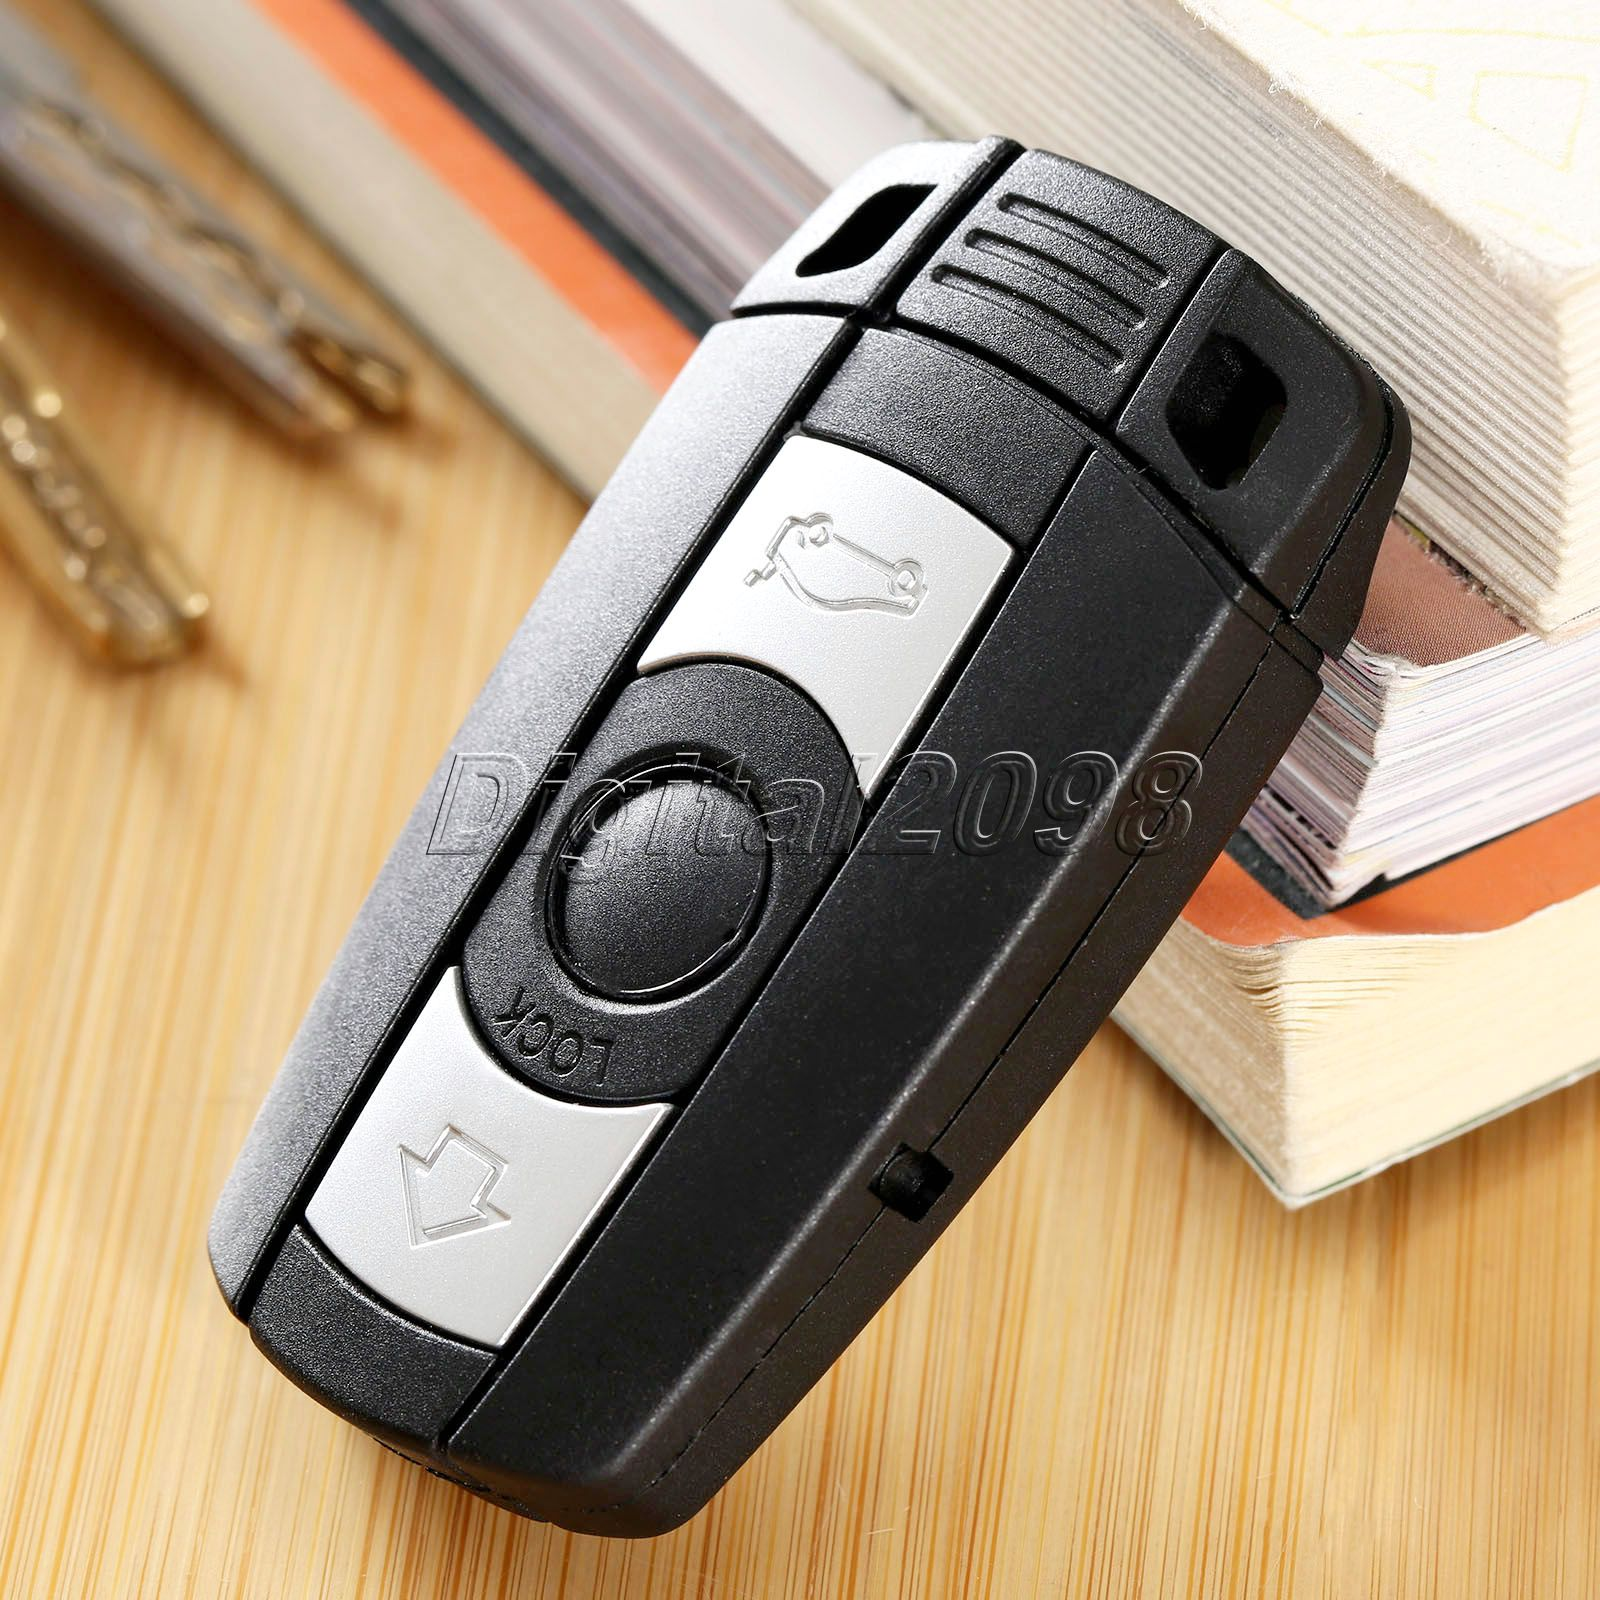 Replacement 3 Buttons Fob Remote Key Shell Case Folding Flip Uncut Blade Blank Car Key Shell for BMW 1 3 5 6 Car Alarm Housing(China (Mainland))